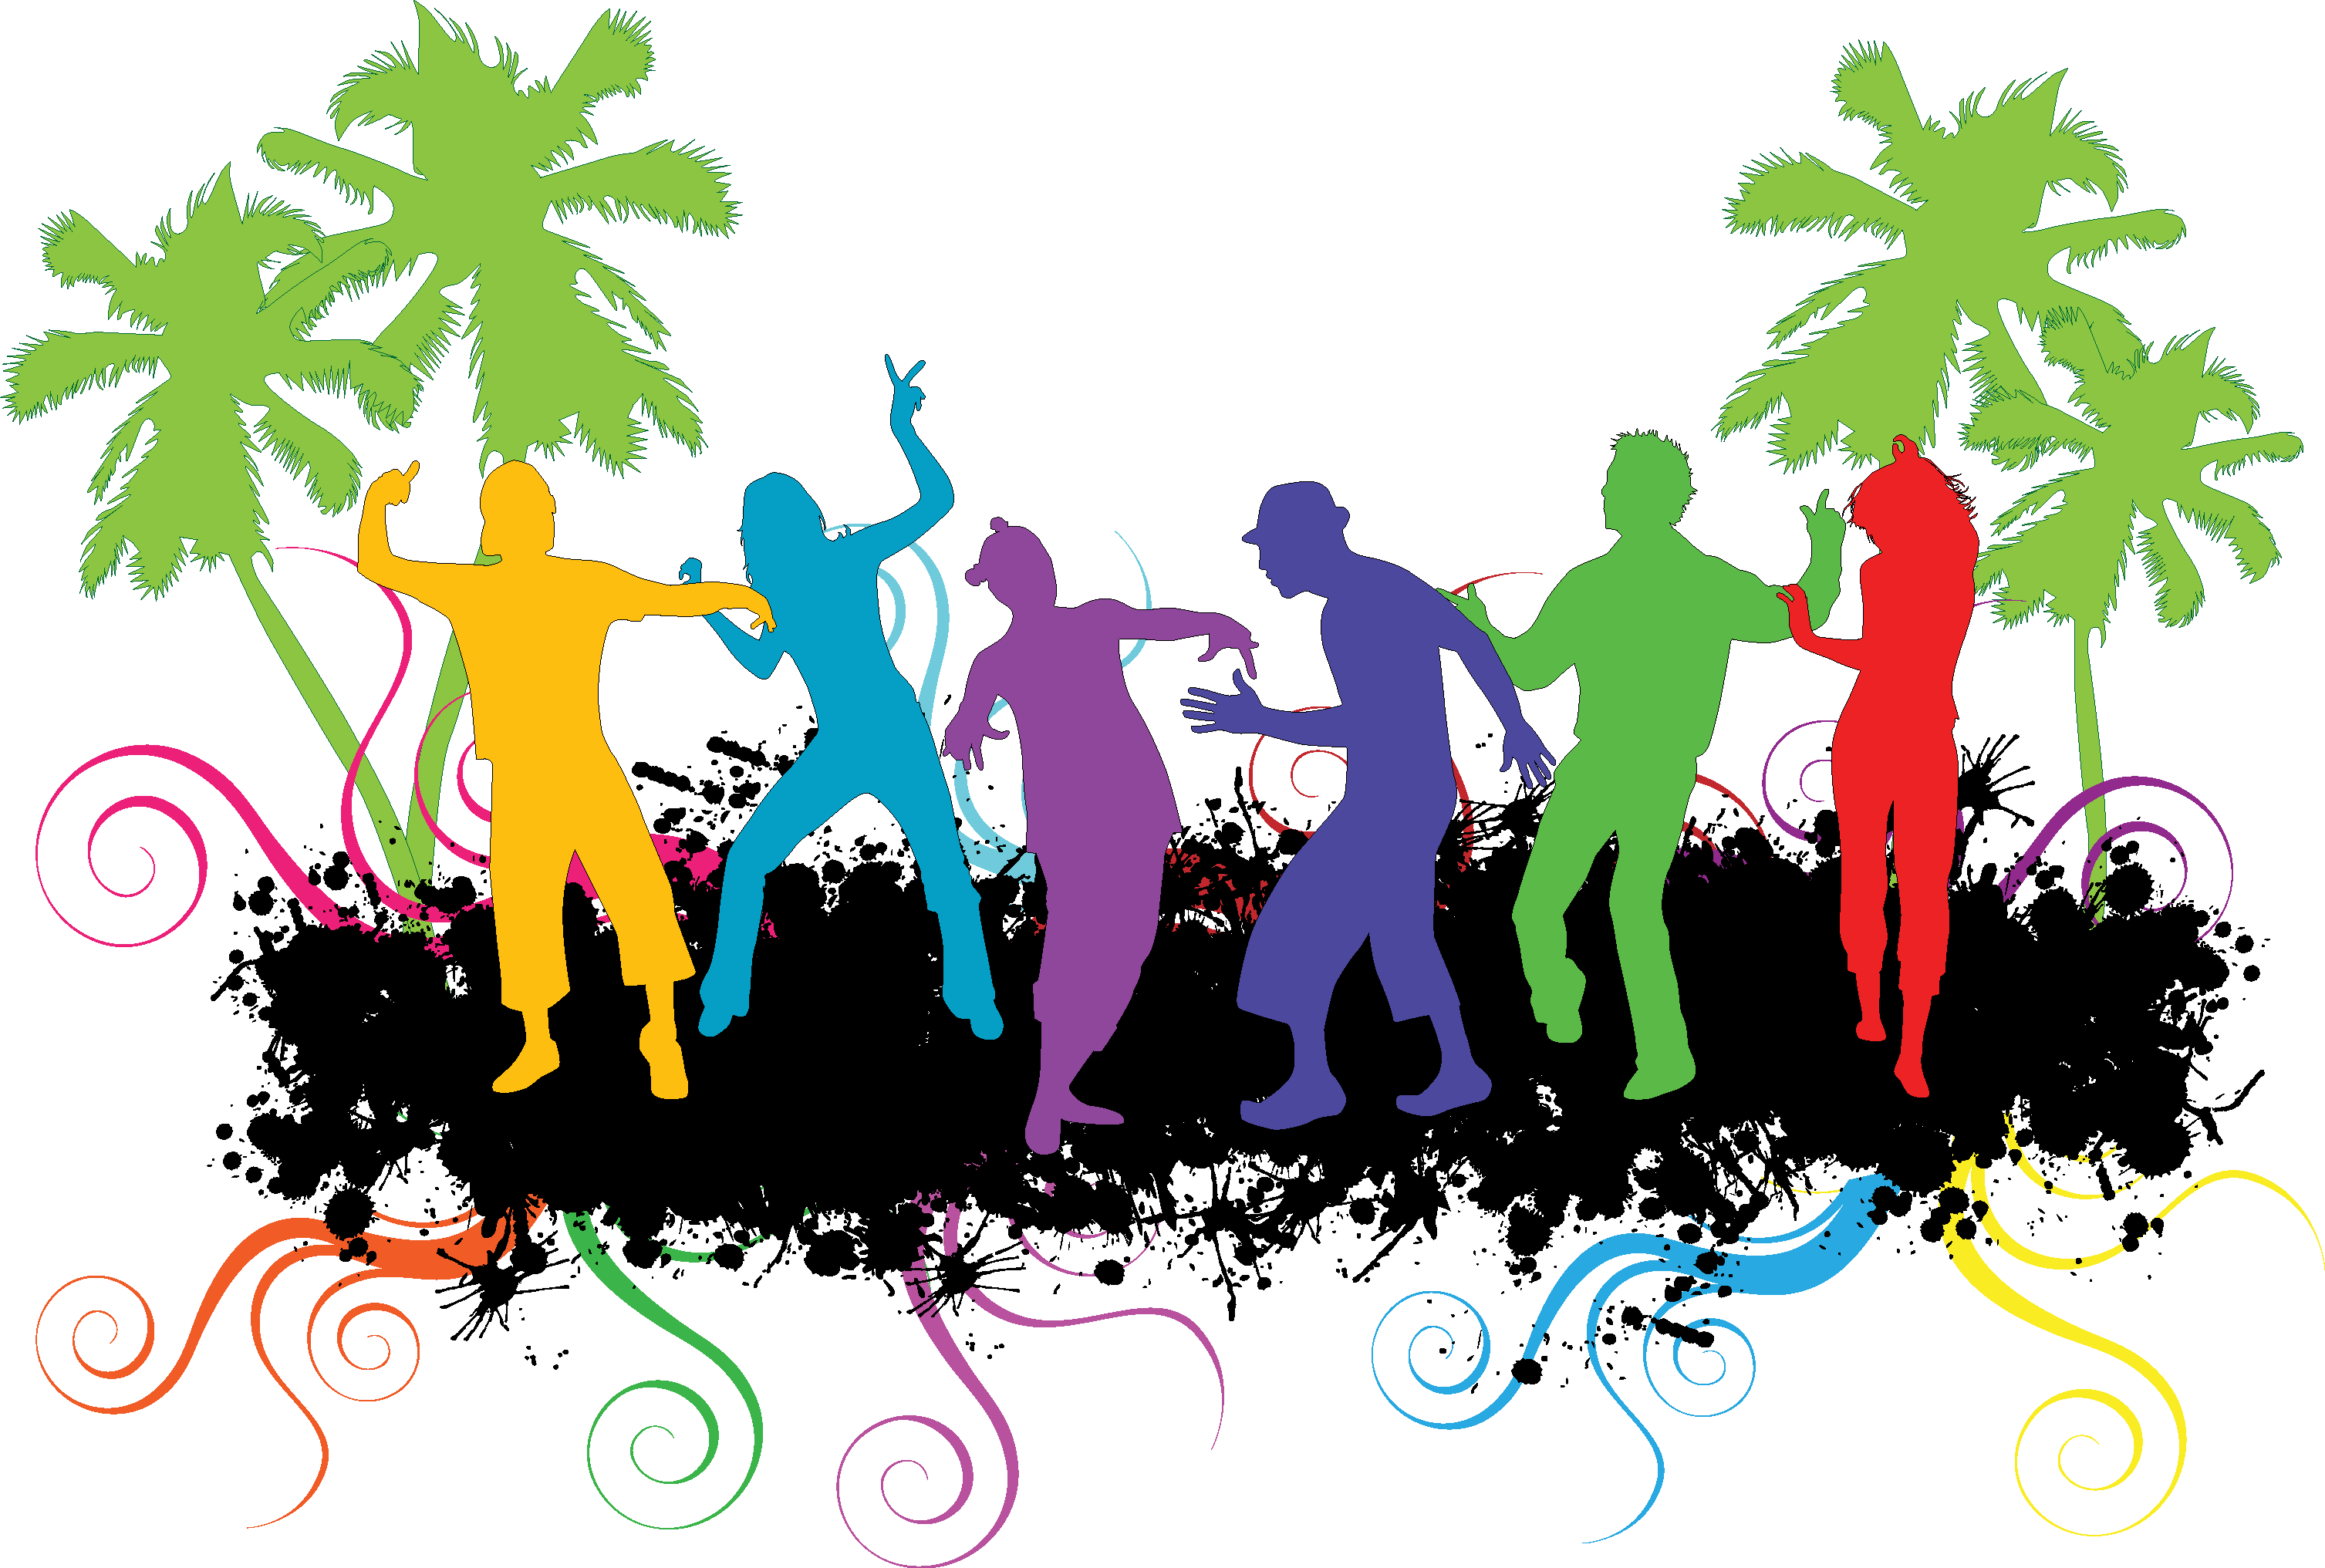 3014x2033 Party 03 Vector Eps Free Download, Logo, Icons, Clipart